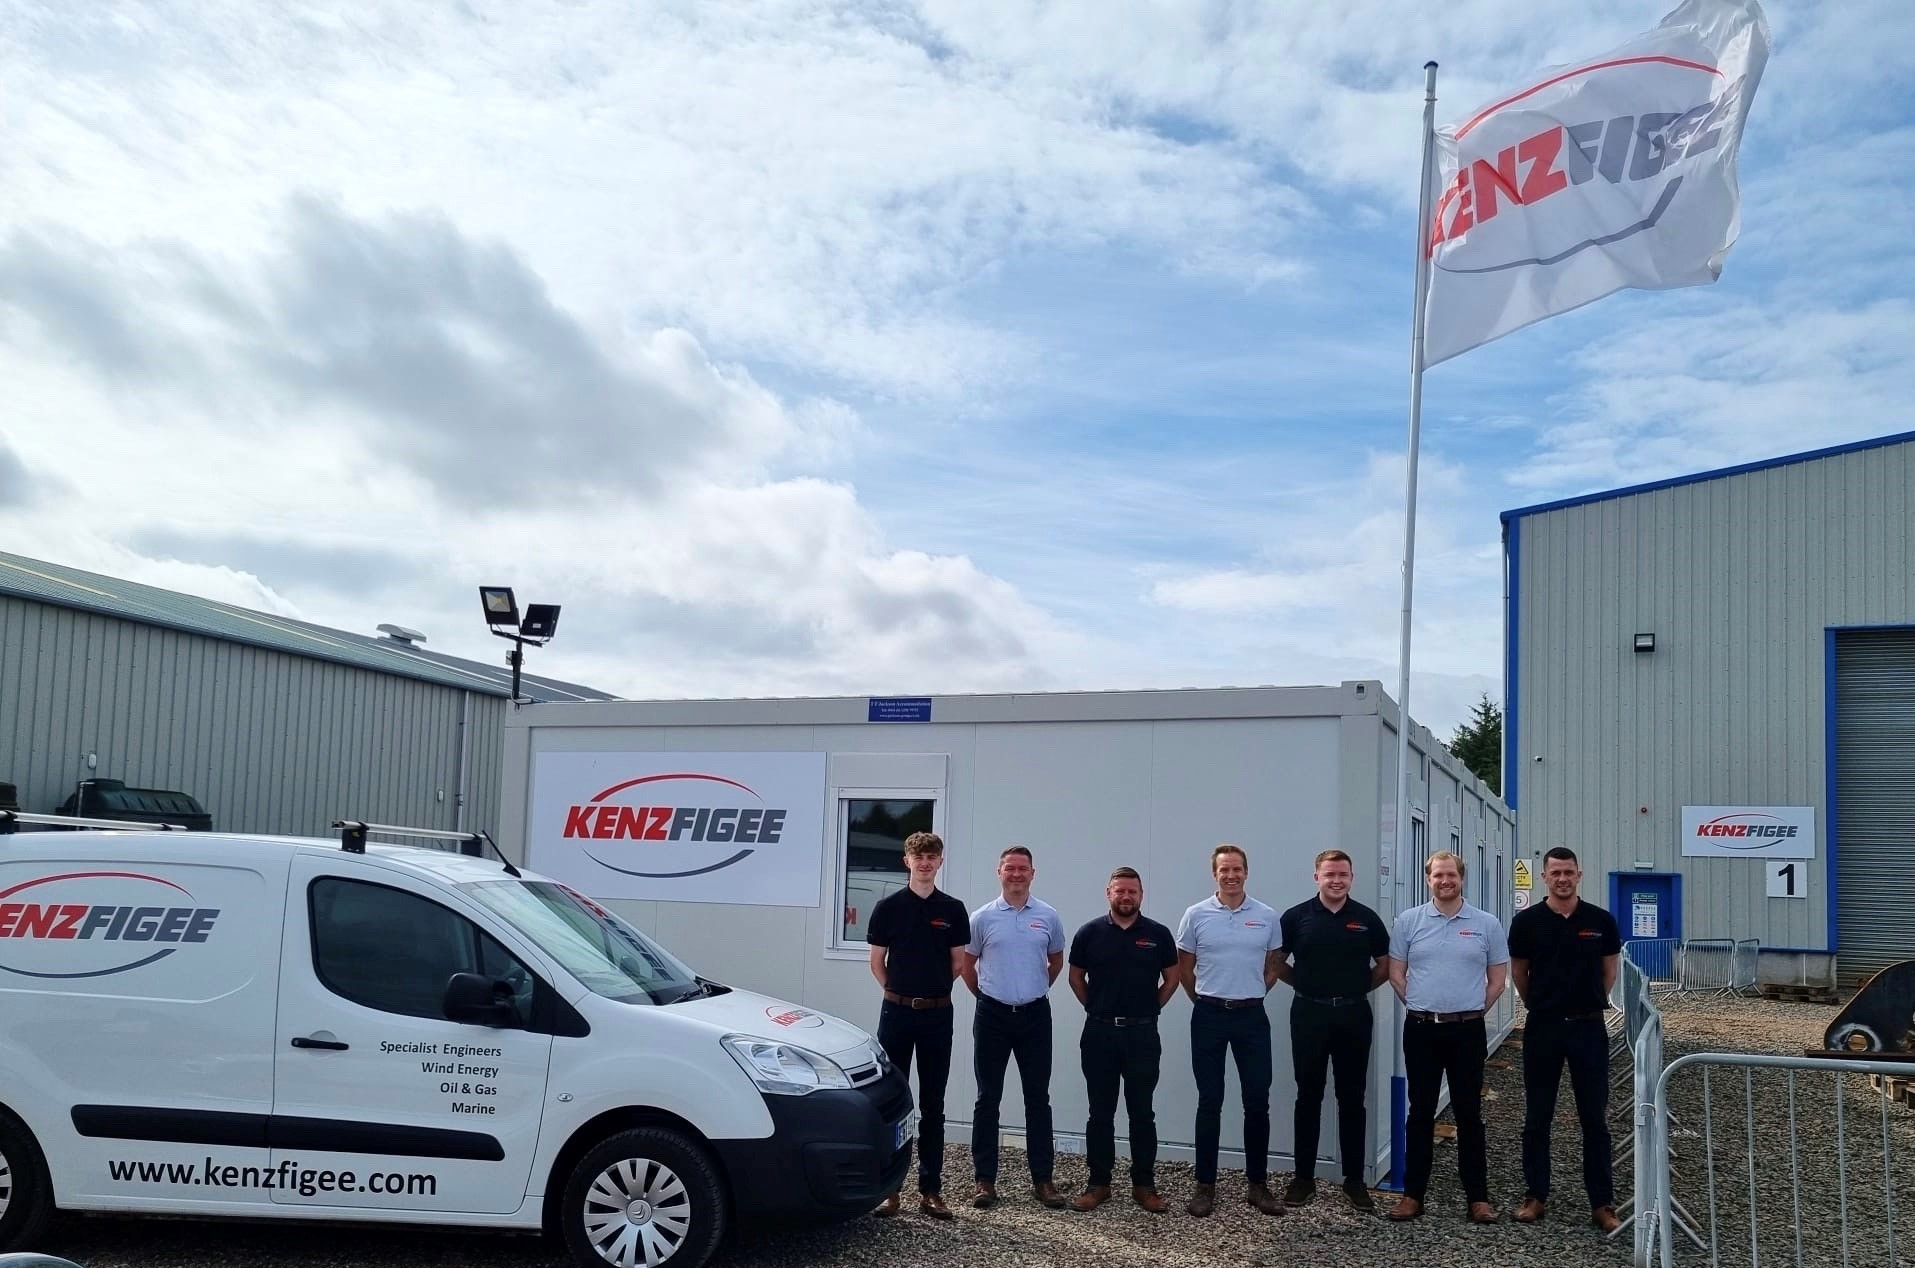 KenzFigee UK expand to new multi-purpose site